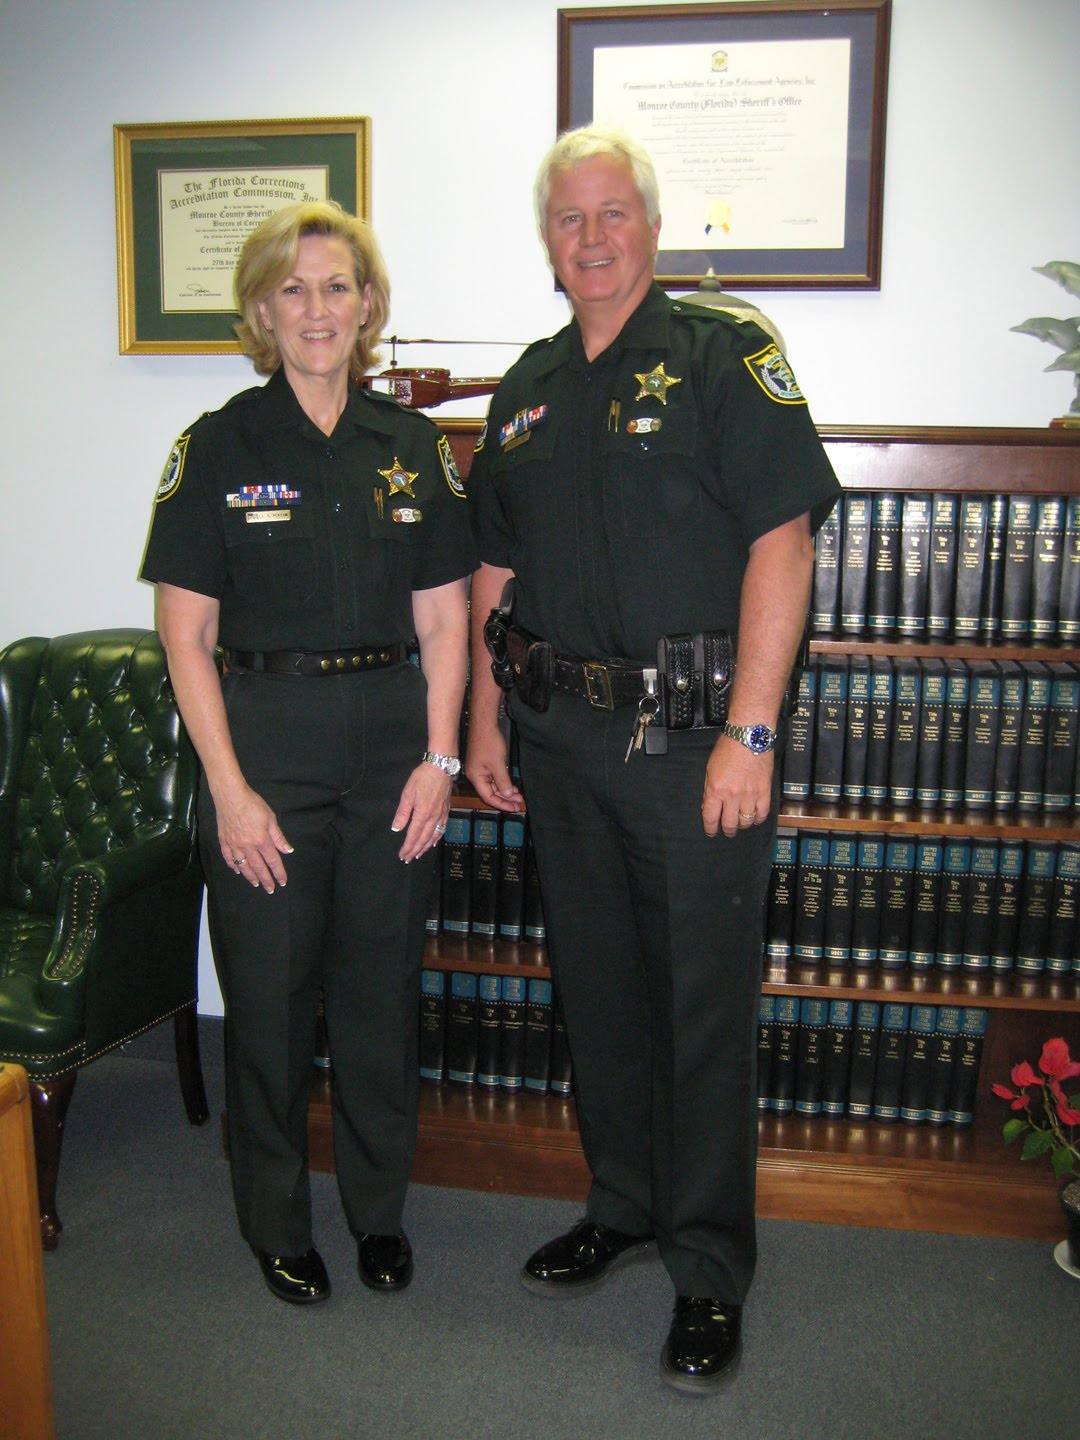 Monroe County Sheriff's Office - Florida Keys: May 2010